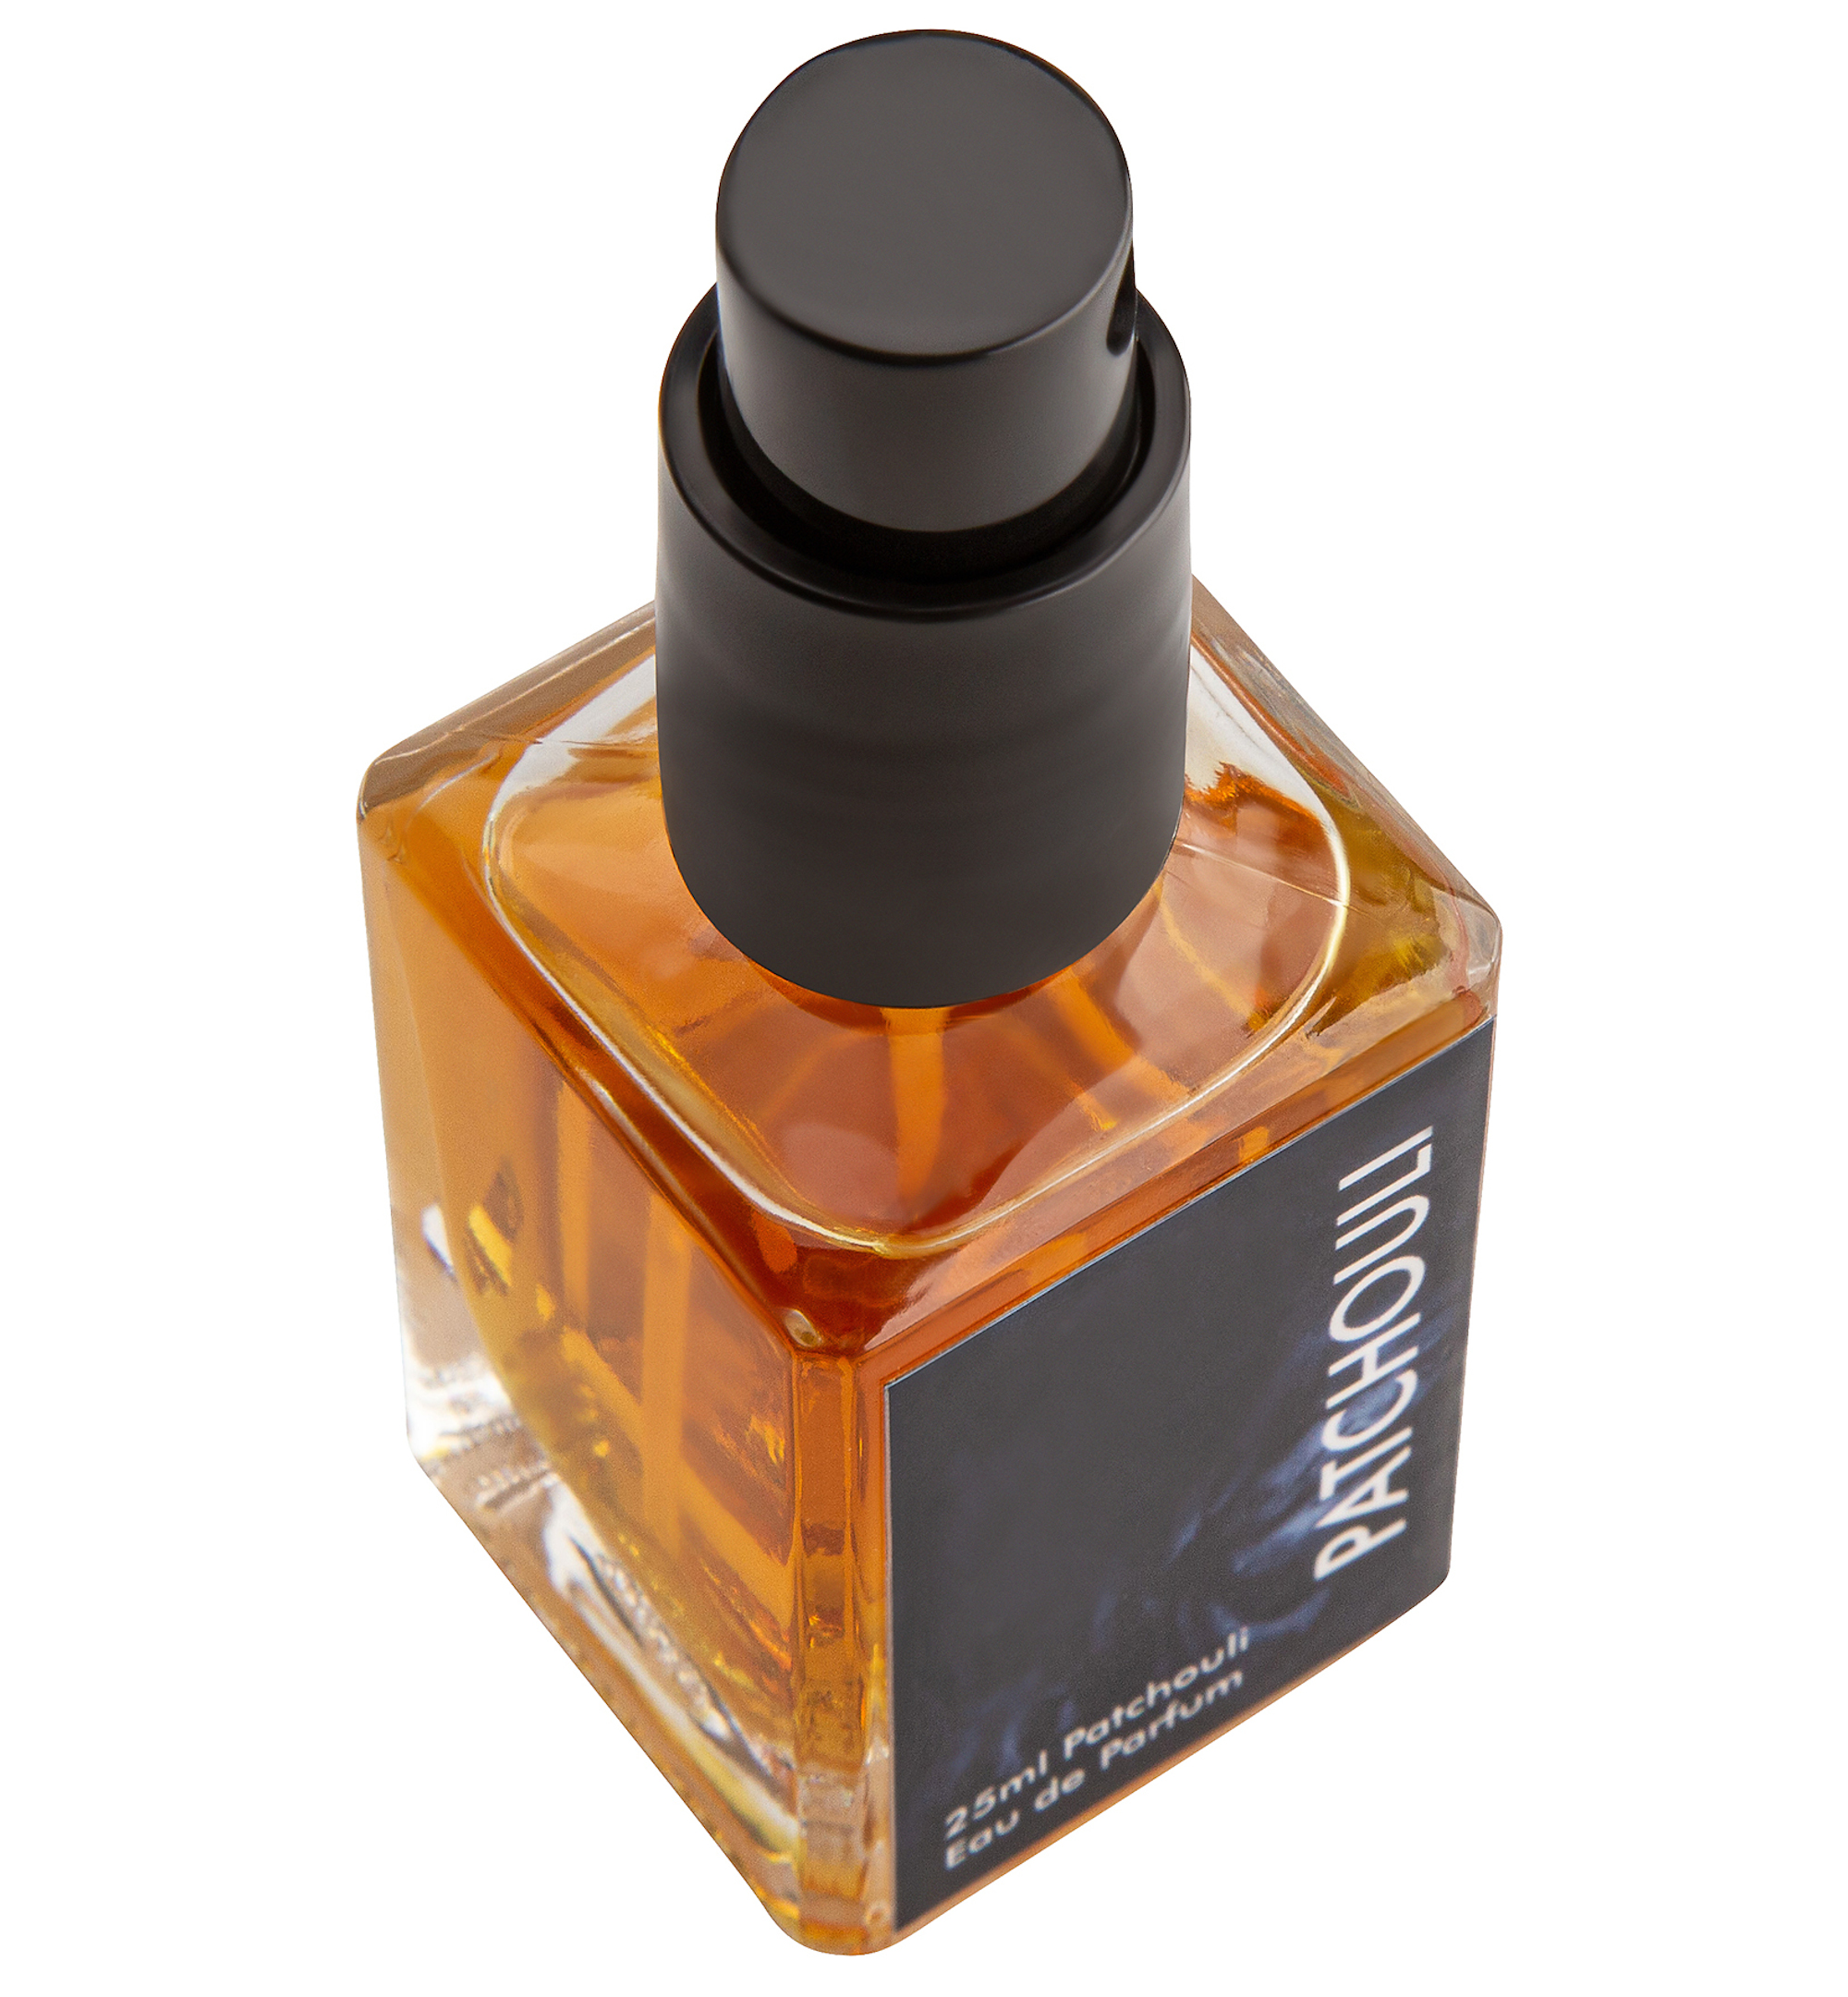 Patchouly, Eau de Parfüm, 25 ml